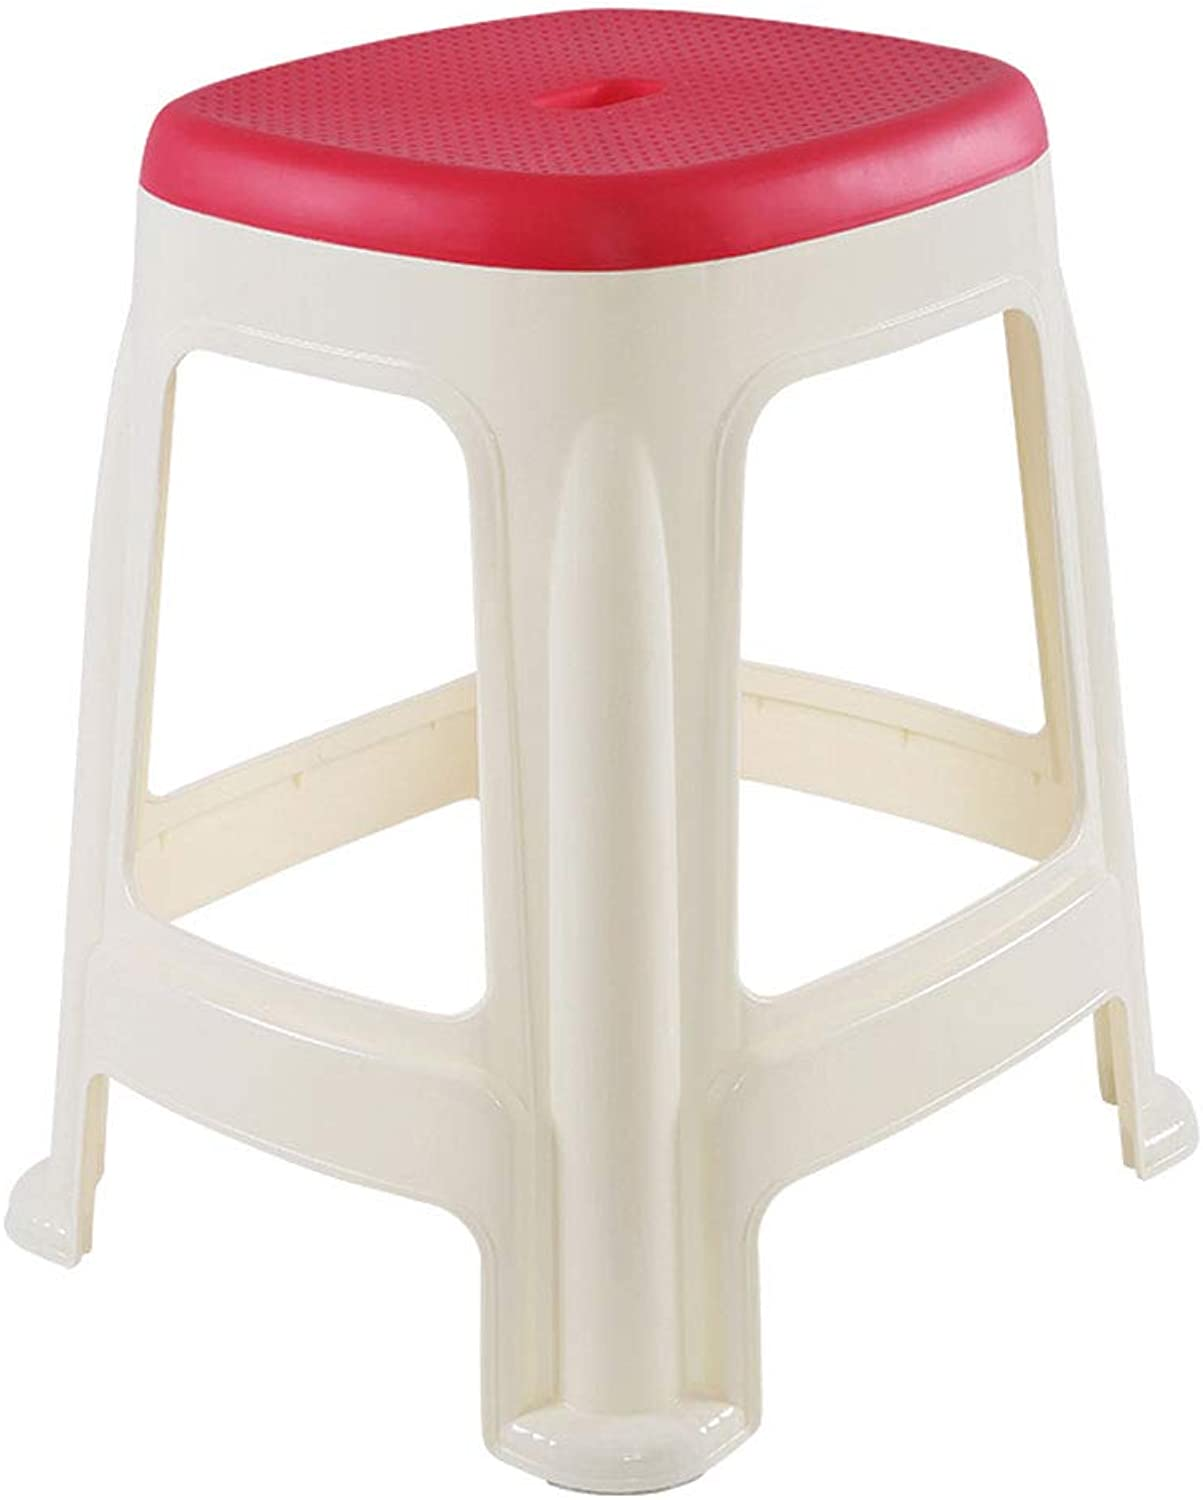 Adult Plastic Stool Smooth Texture Living Room Study Bathroom Chair Two Sizes with Non-Slip Mats (color   Red, Size   L)